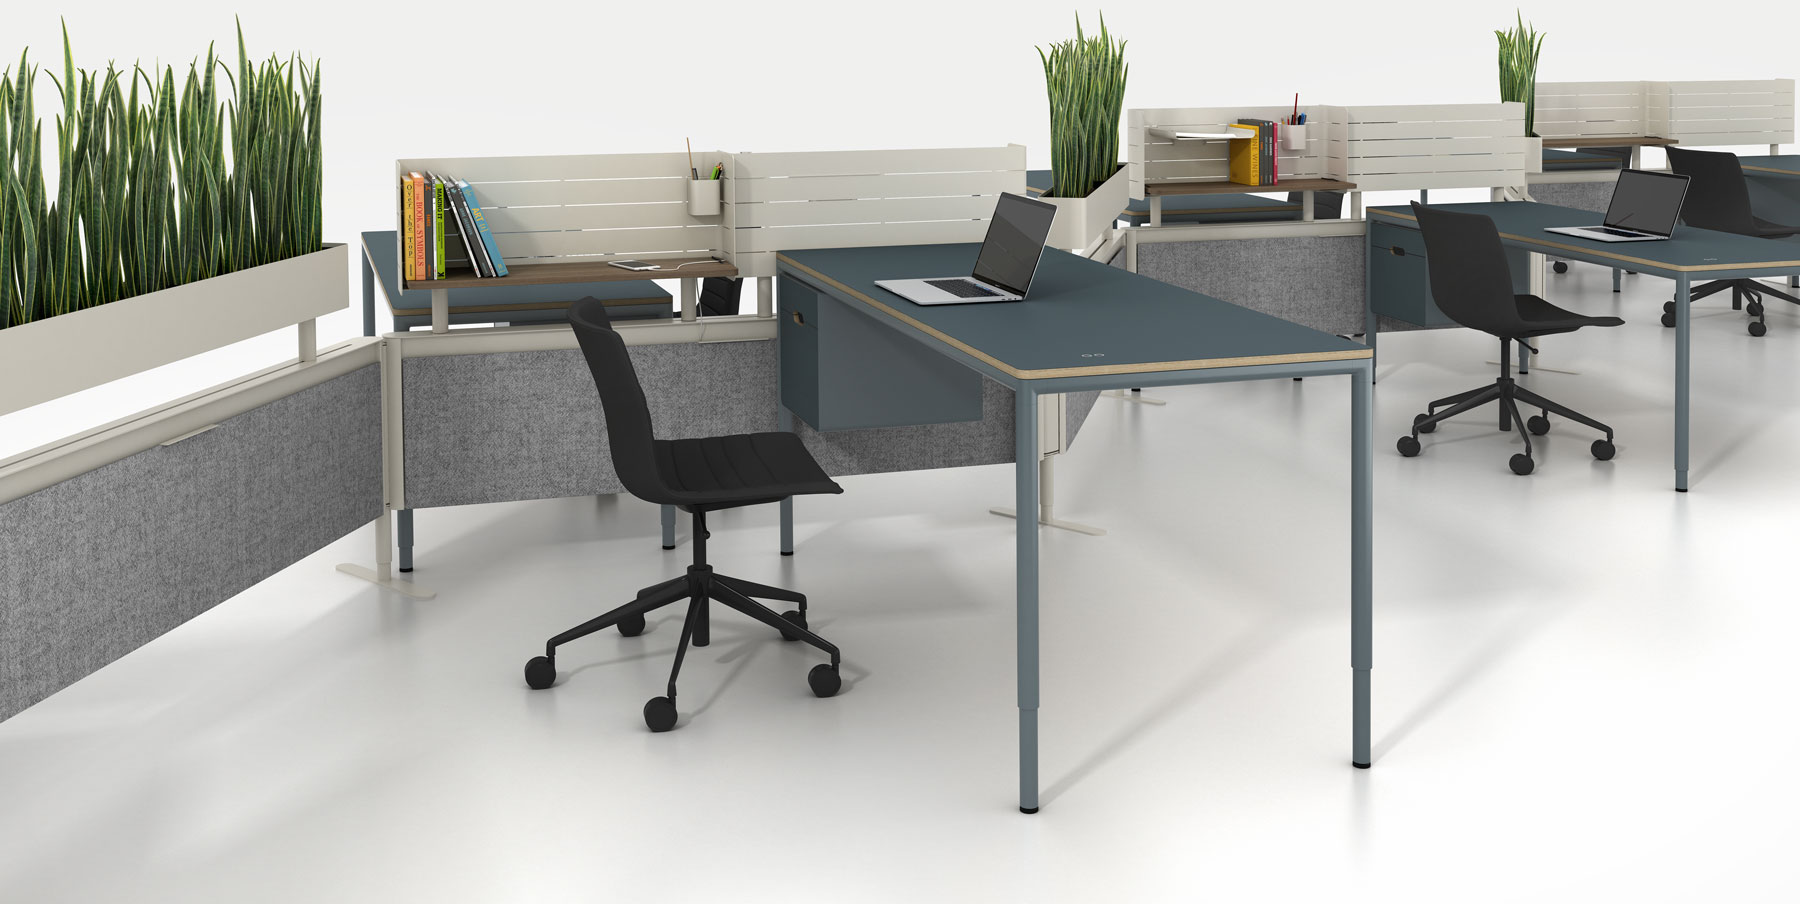 C9 desk and rail system